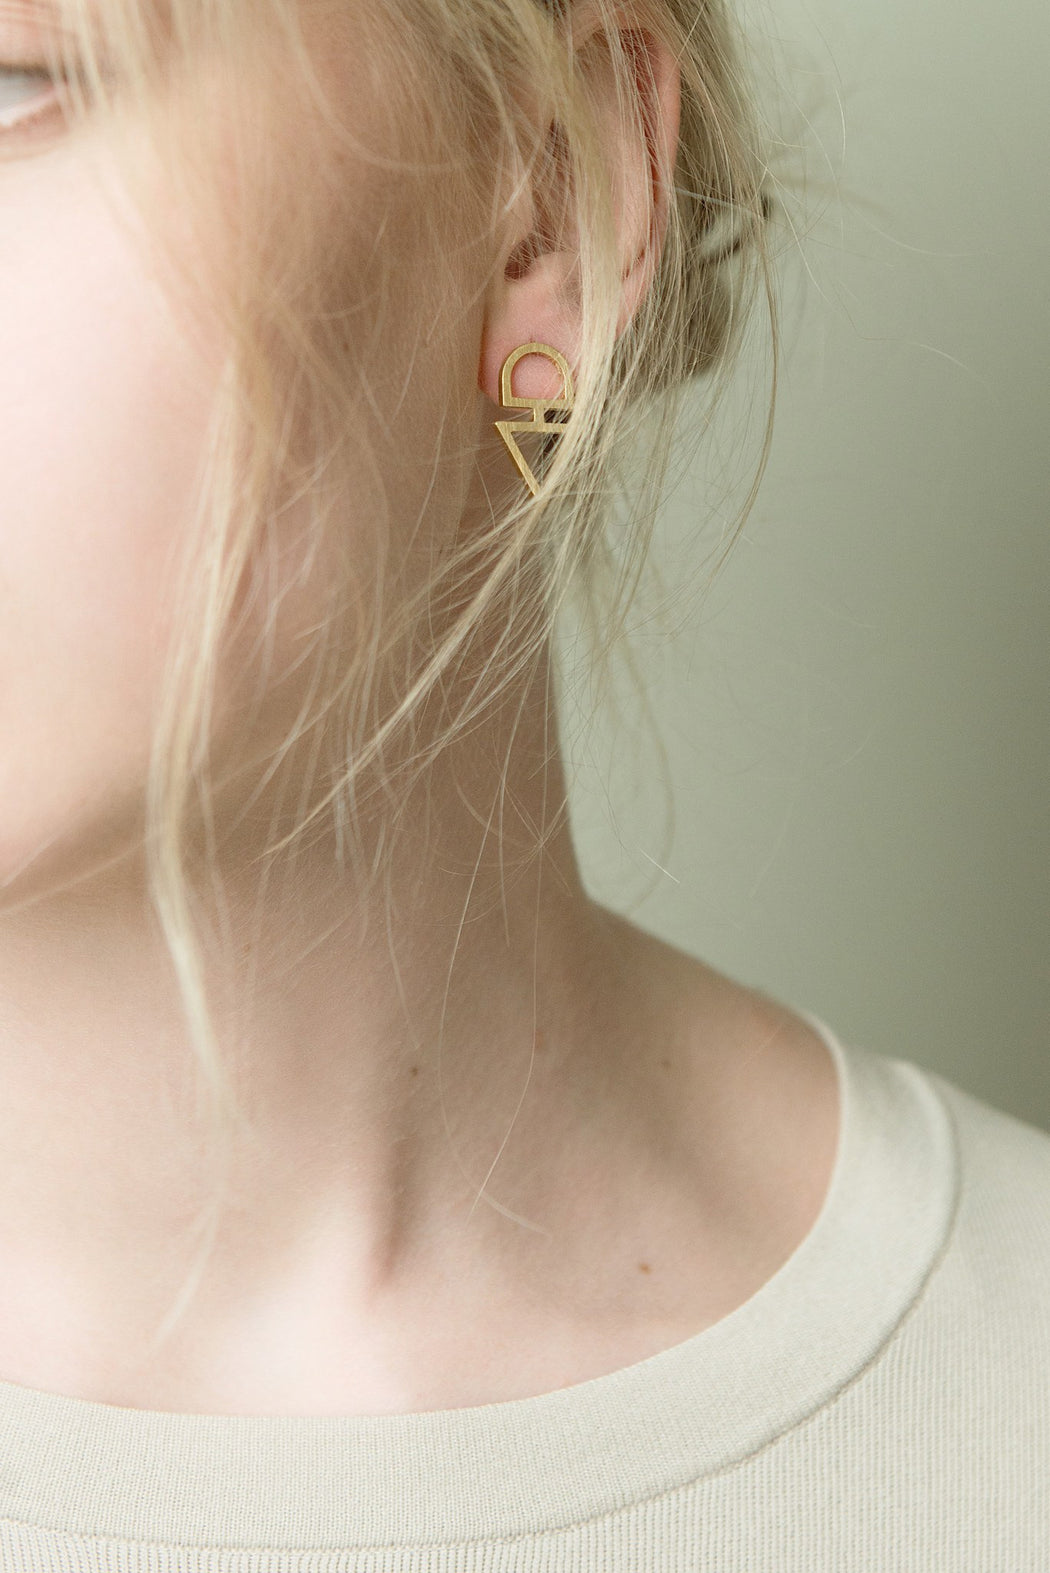 BAIUSHKI ARROW earrings